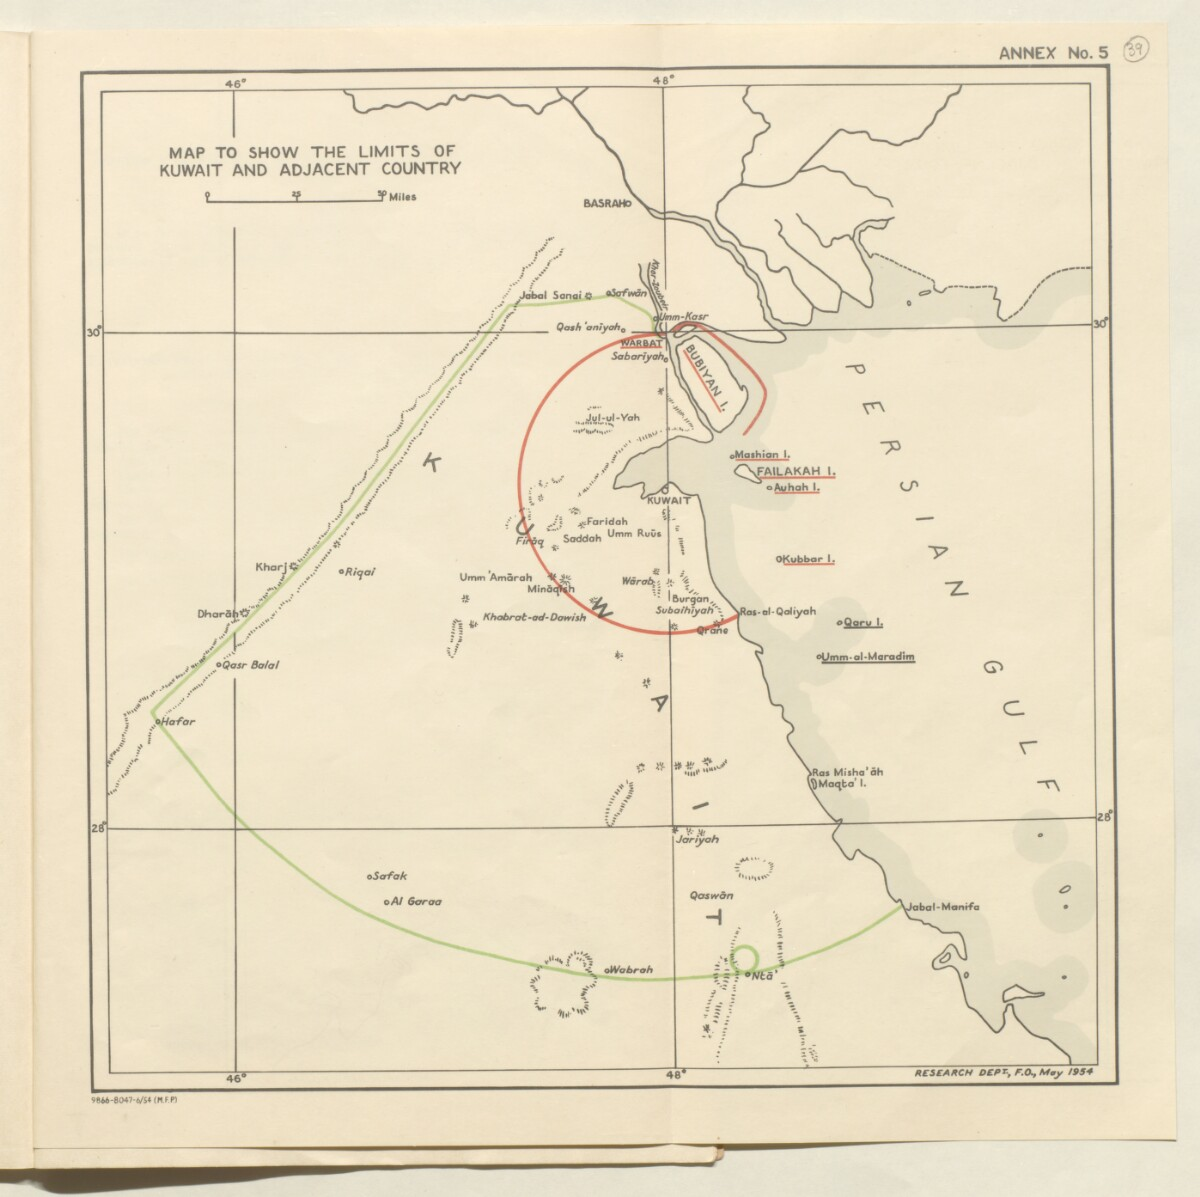 'Map to show the Limits of Kuwait and Adjacent Country' [39r] (1/2)